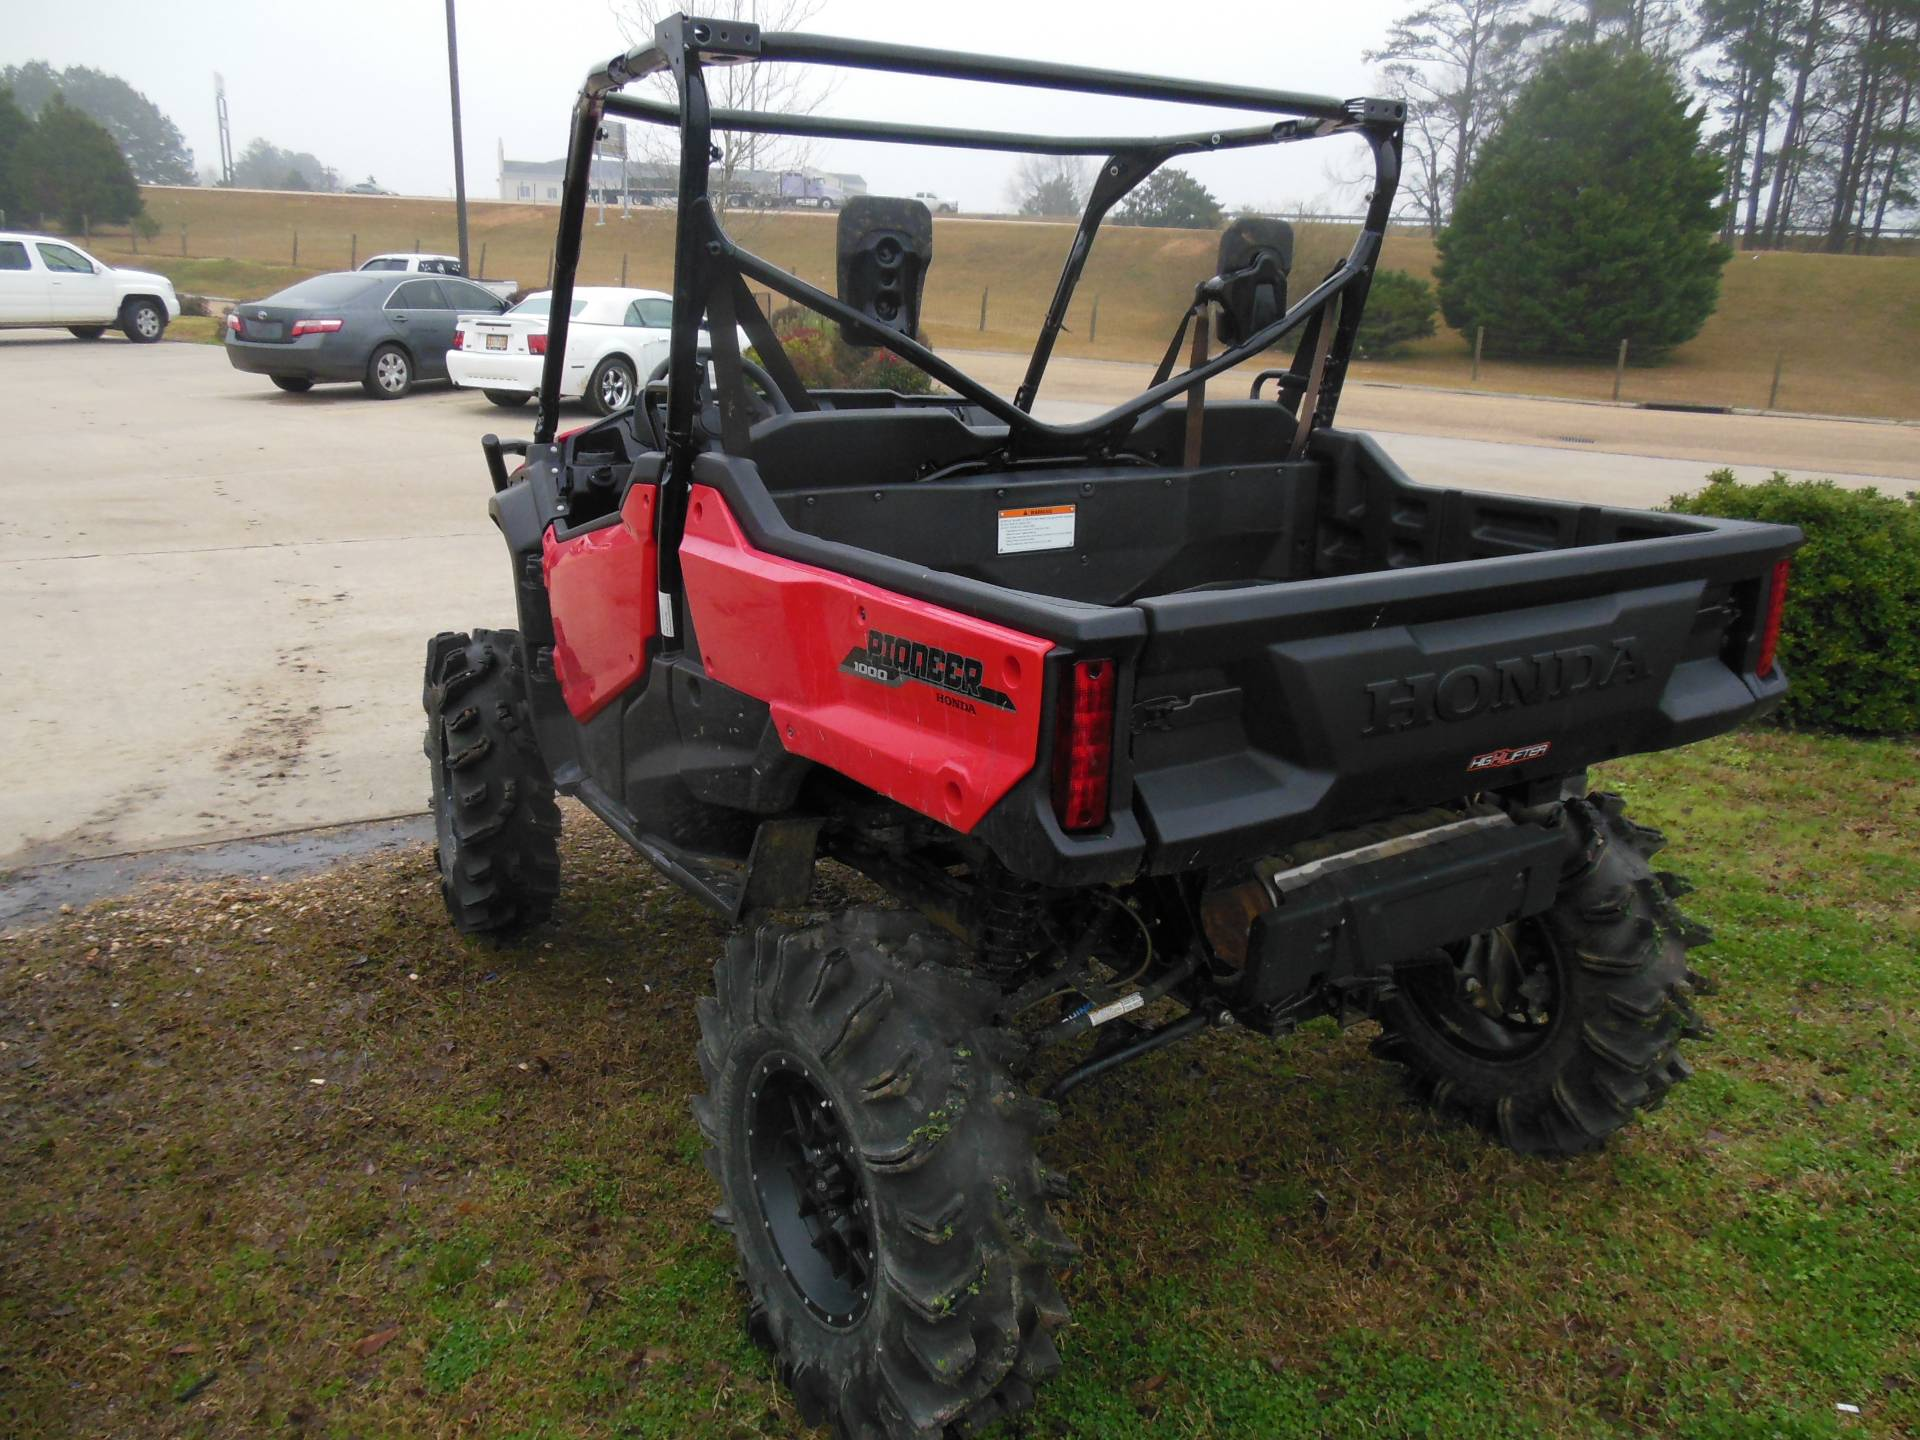 2018 Honda Pioneer 1000 EPS in Brookhaven, Mississippi - Photo 4